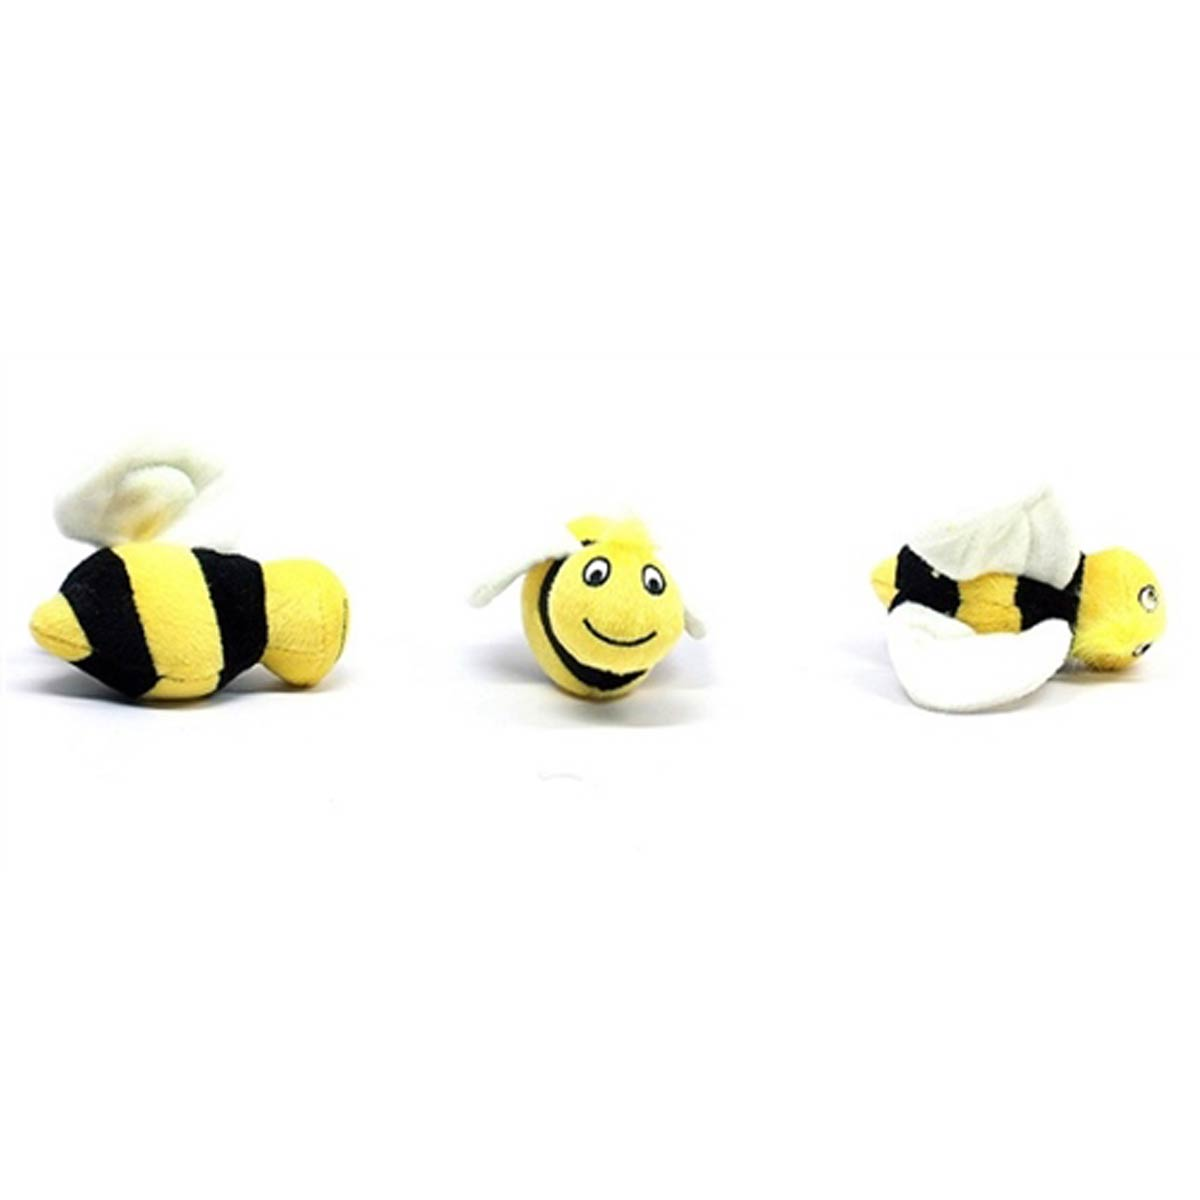 Hide-a-Bee Plush Dog Toy Bee Replacements